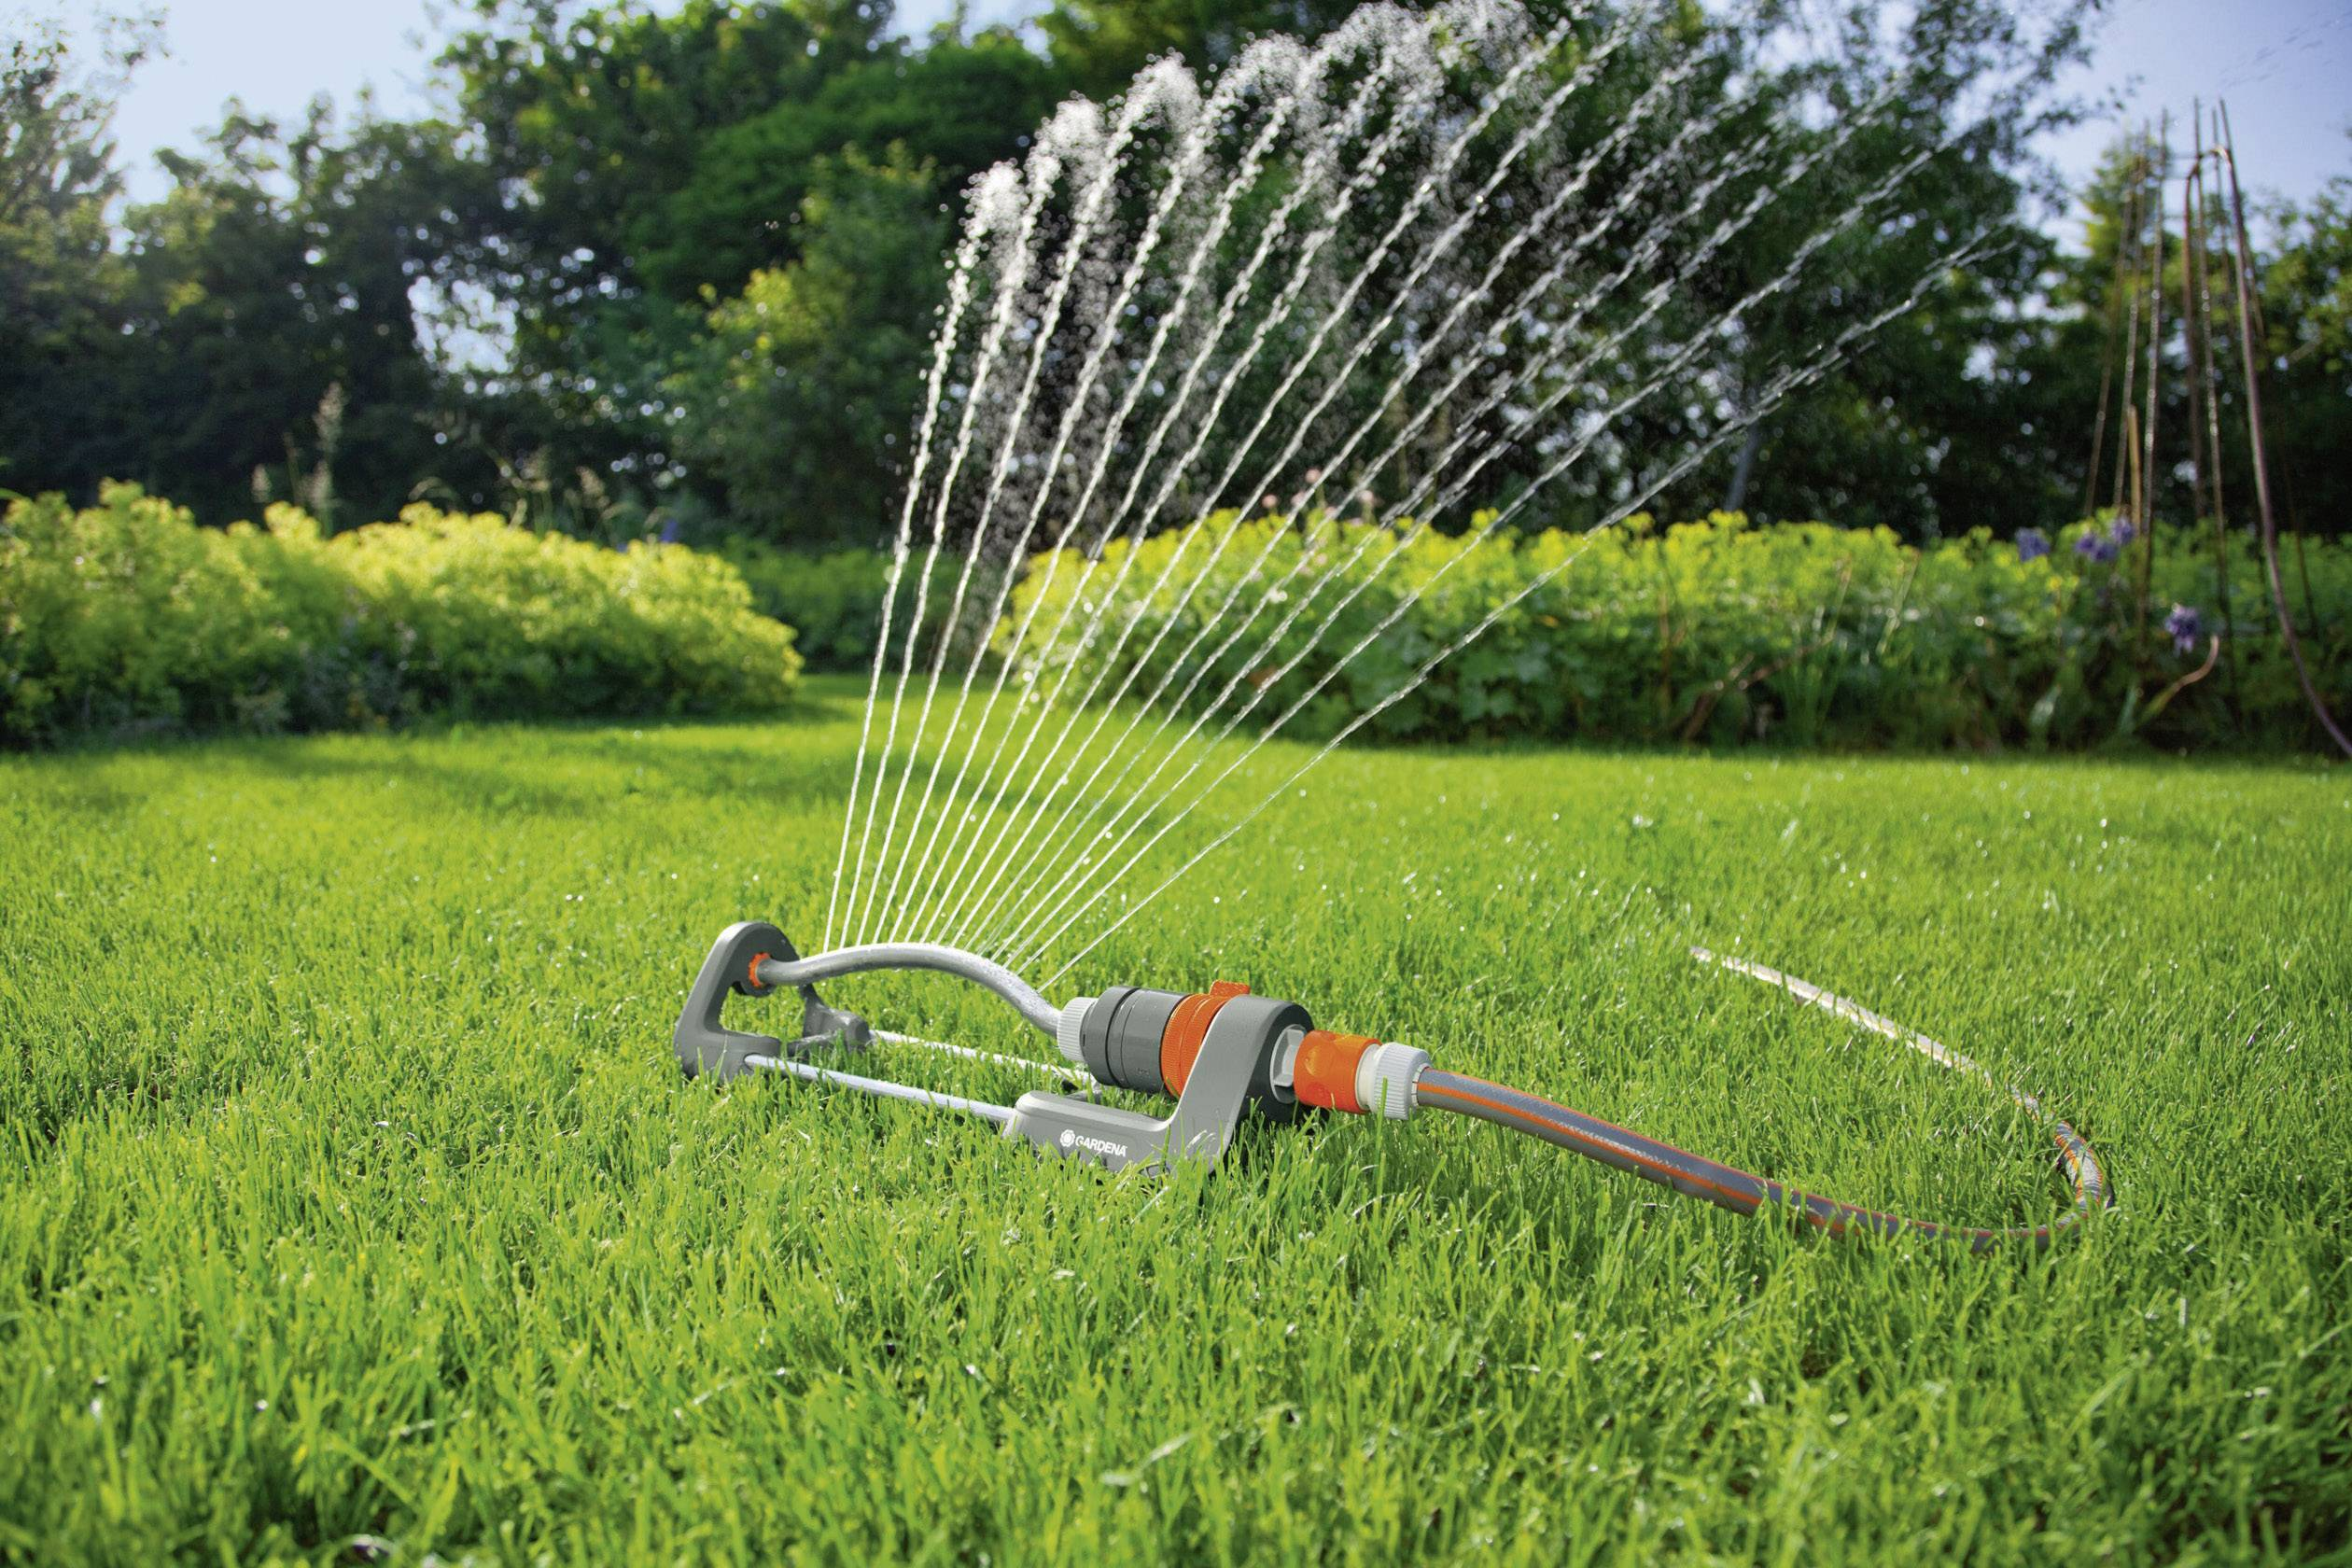 10 Best Lawn Sprinklers to Help Your Lawn Look Fresh